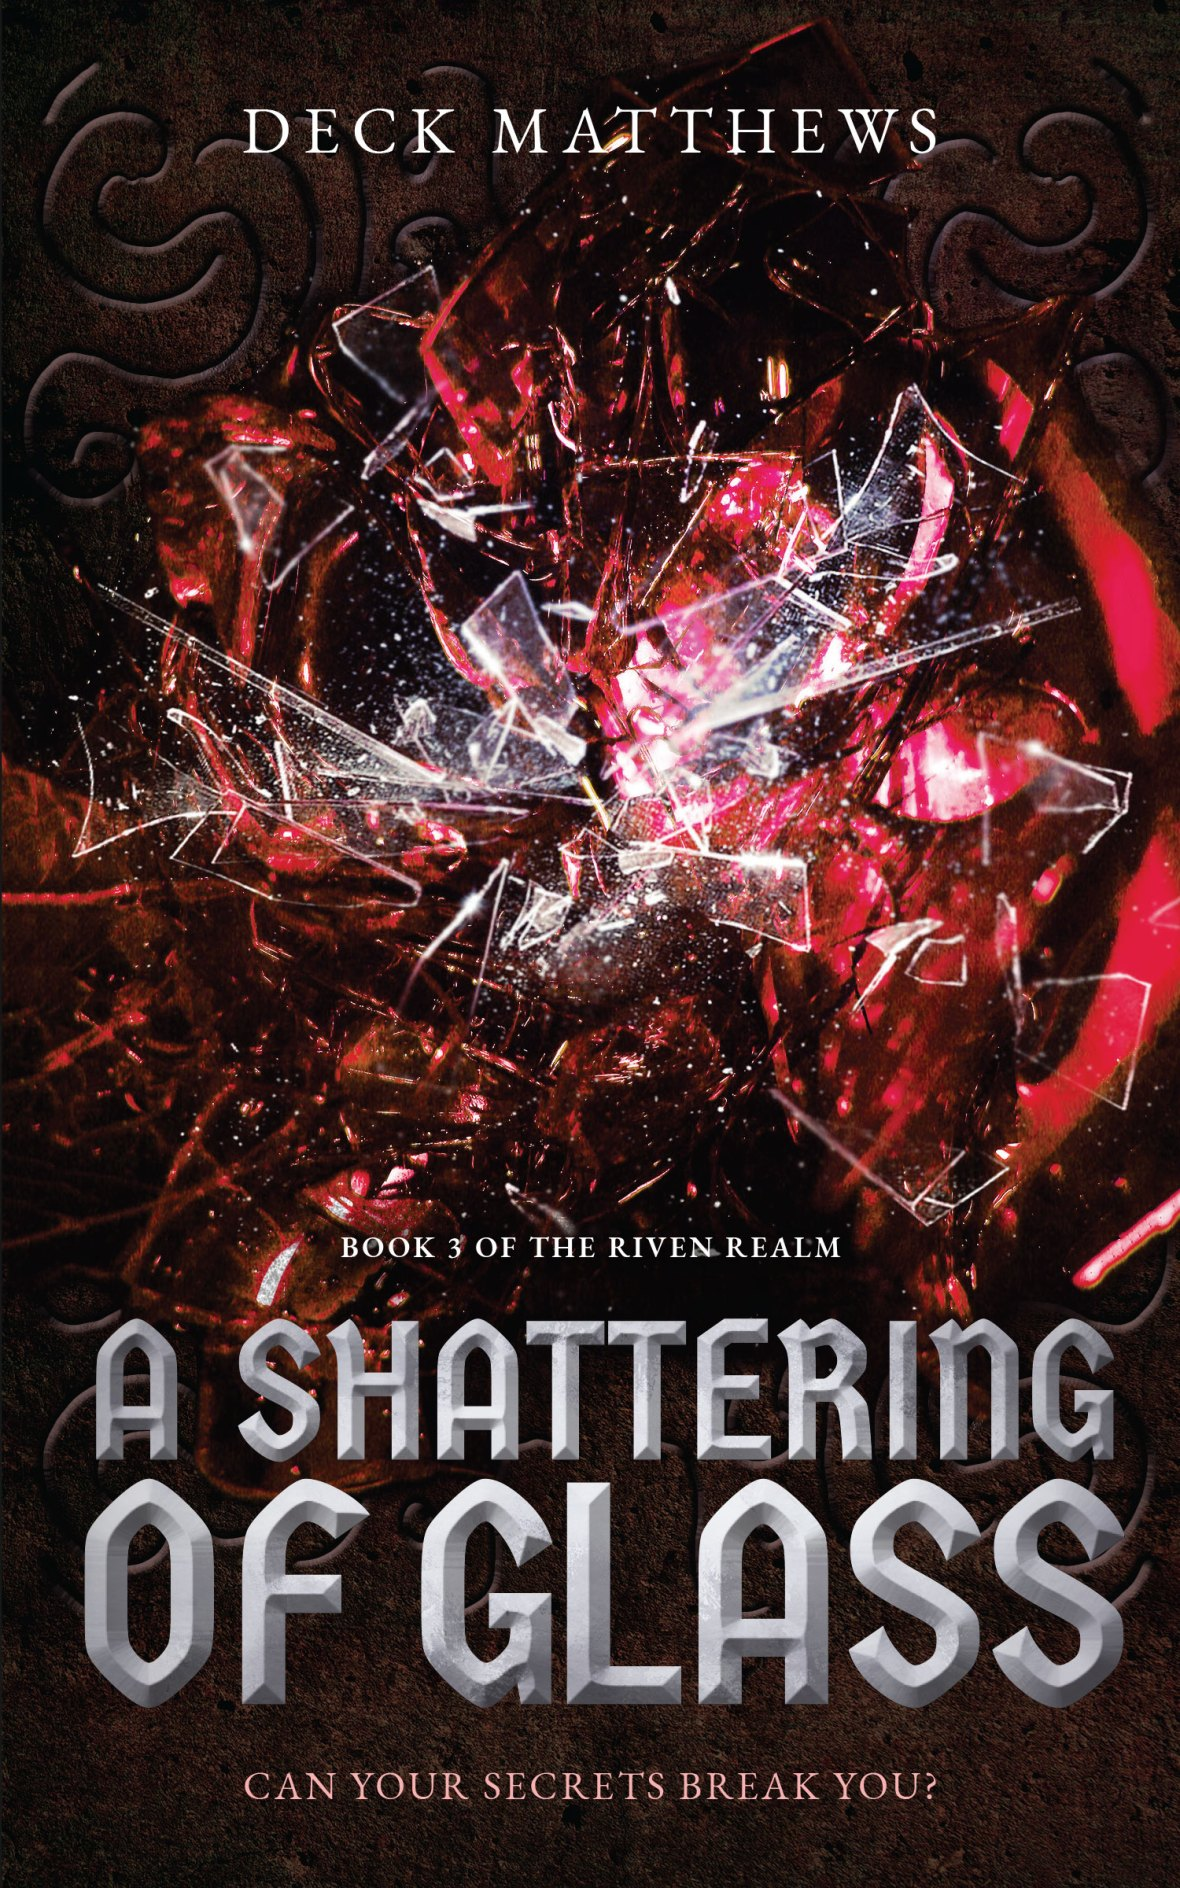 A Shattering of Glass by Deck Matthews